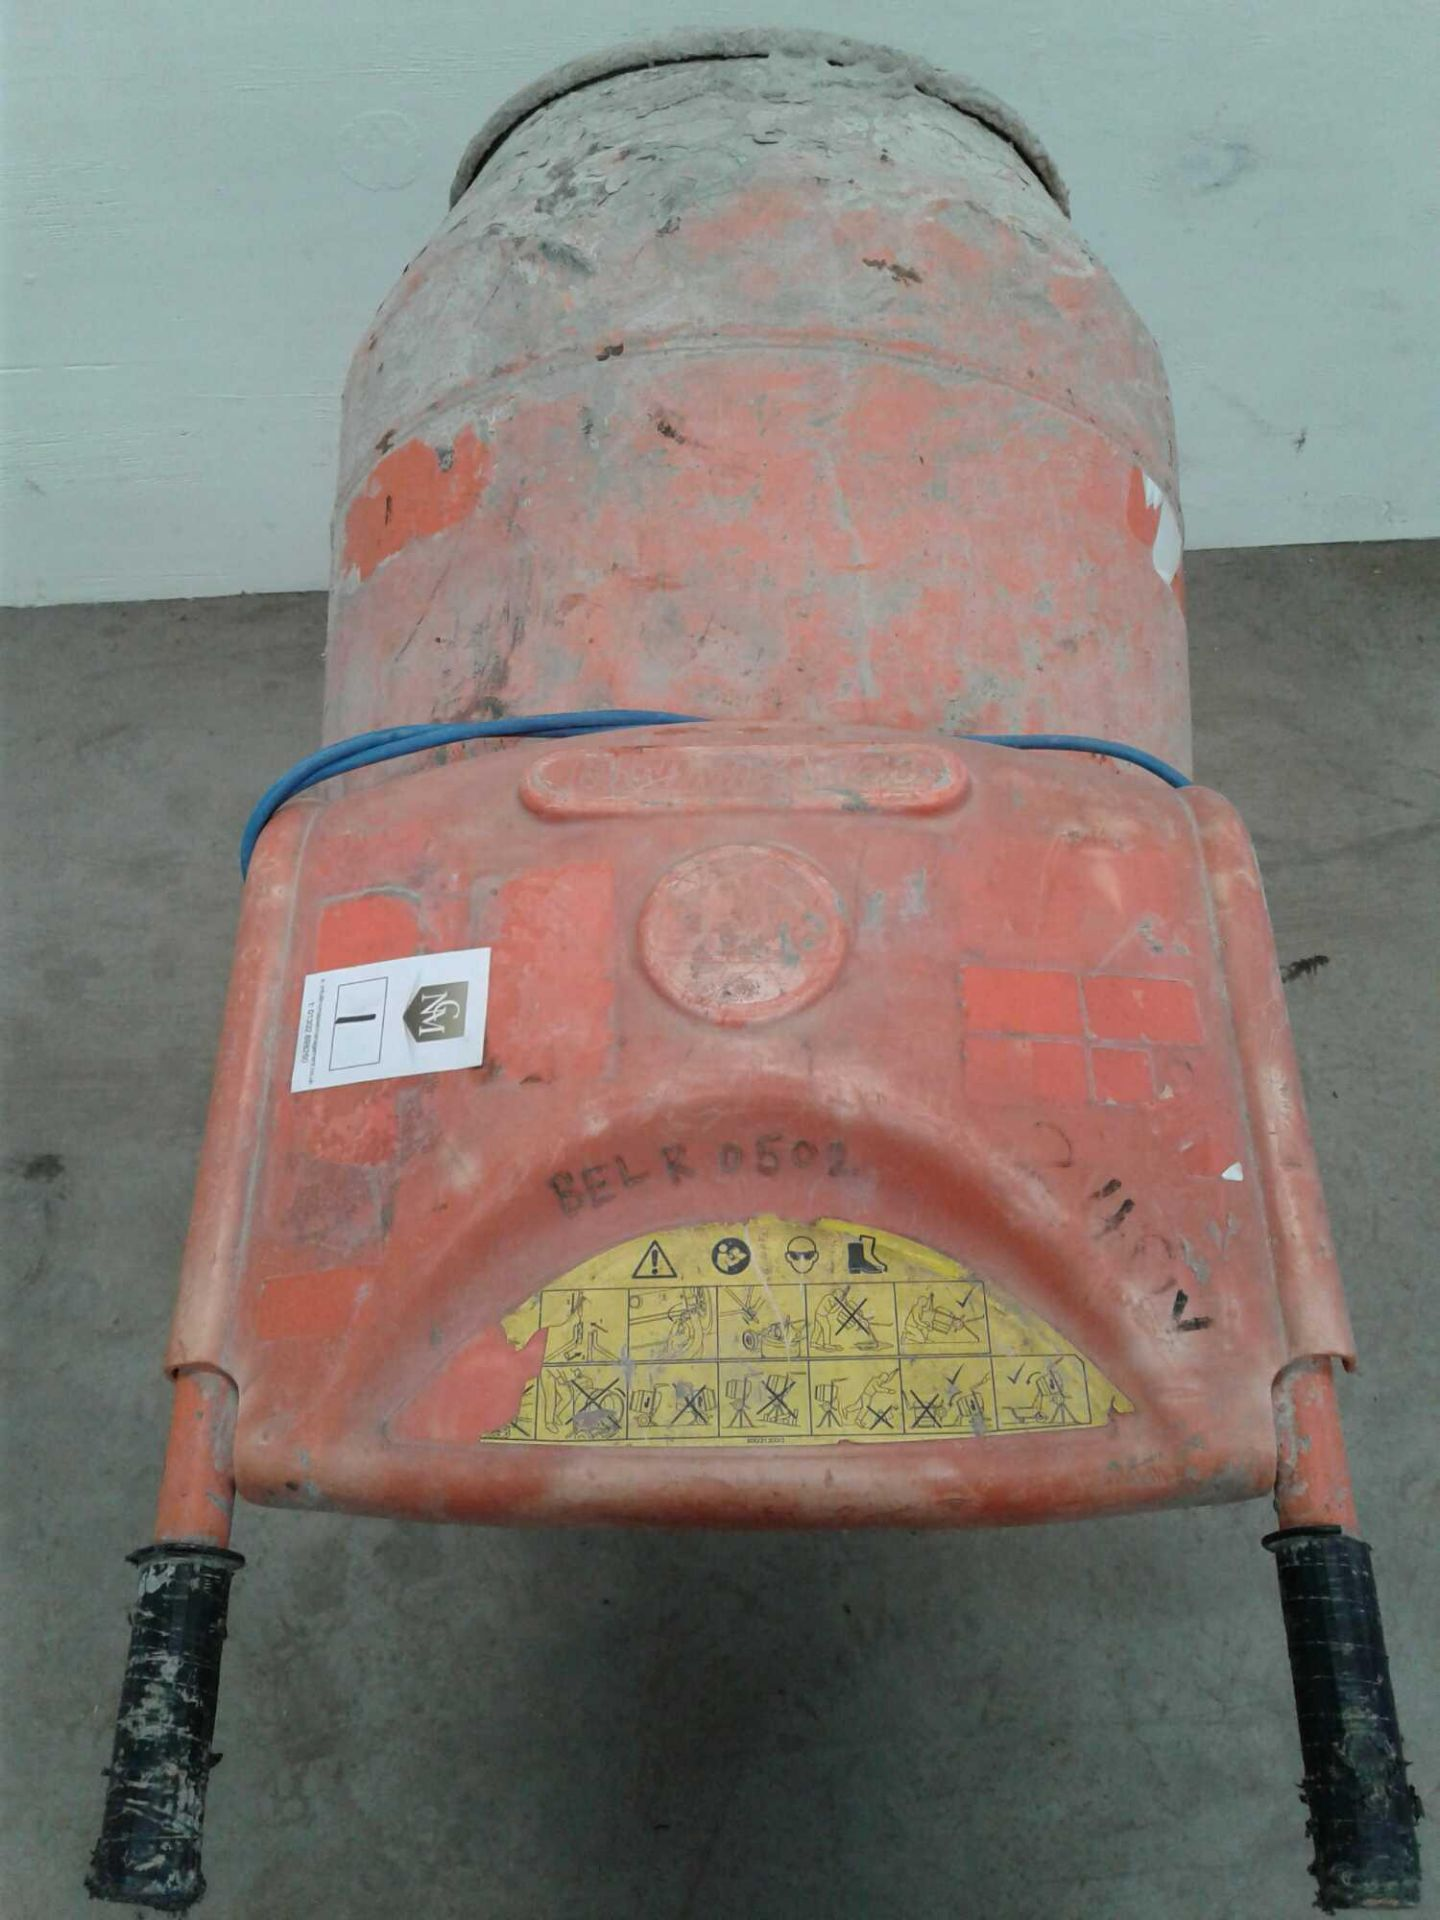 Lot 1 - Belle minimix 150 concrete mixer 230v